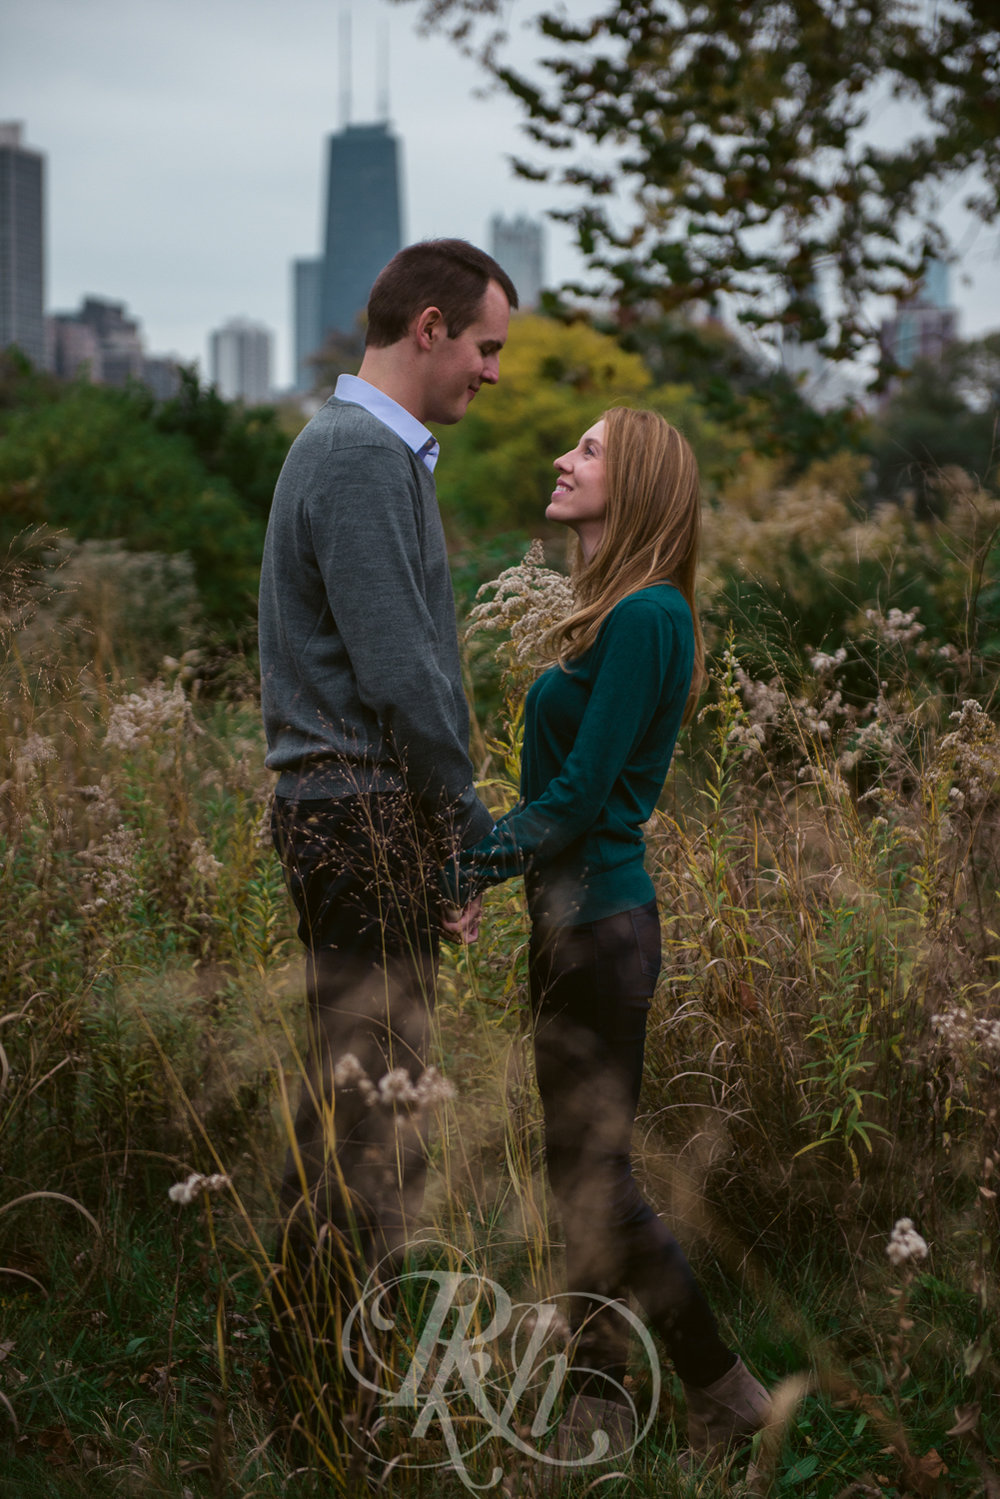 Theresa & Alain - Chicago Engagement Photograhy - RKH Images -1.jpg